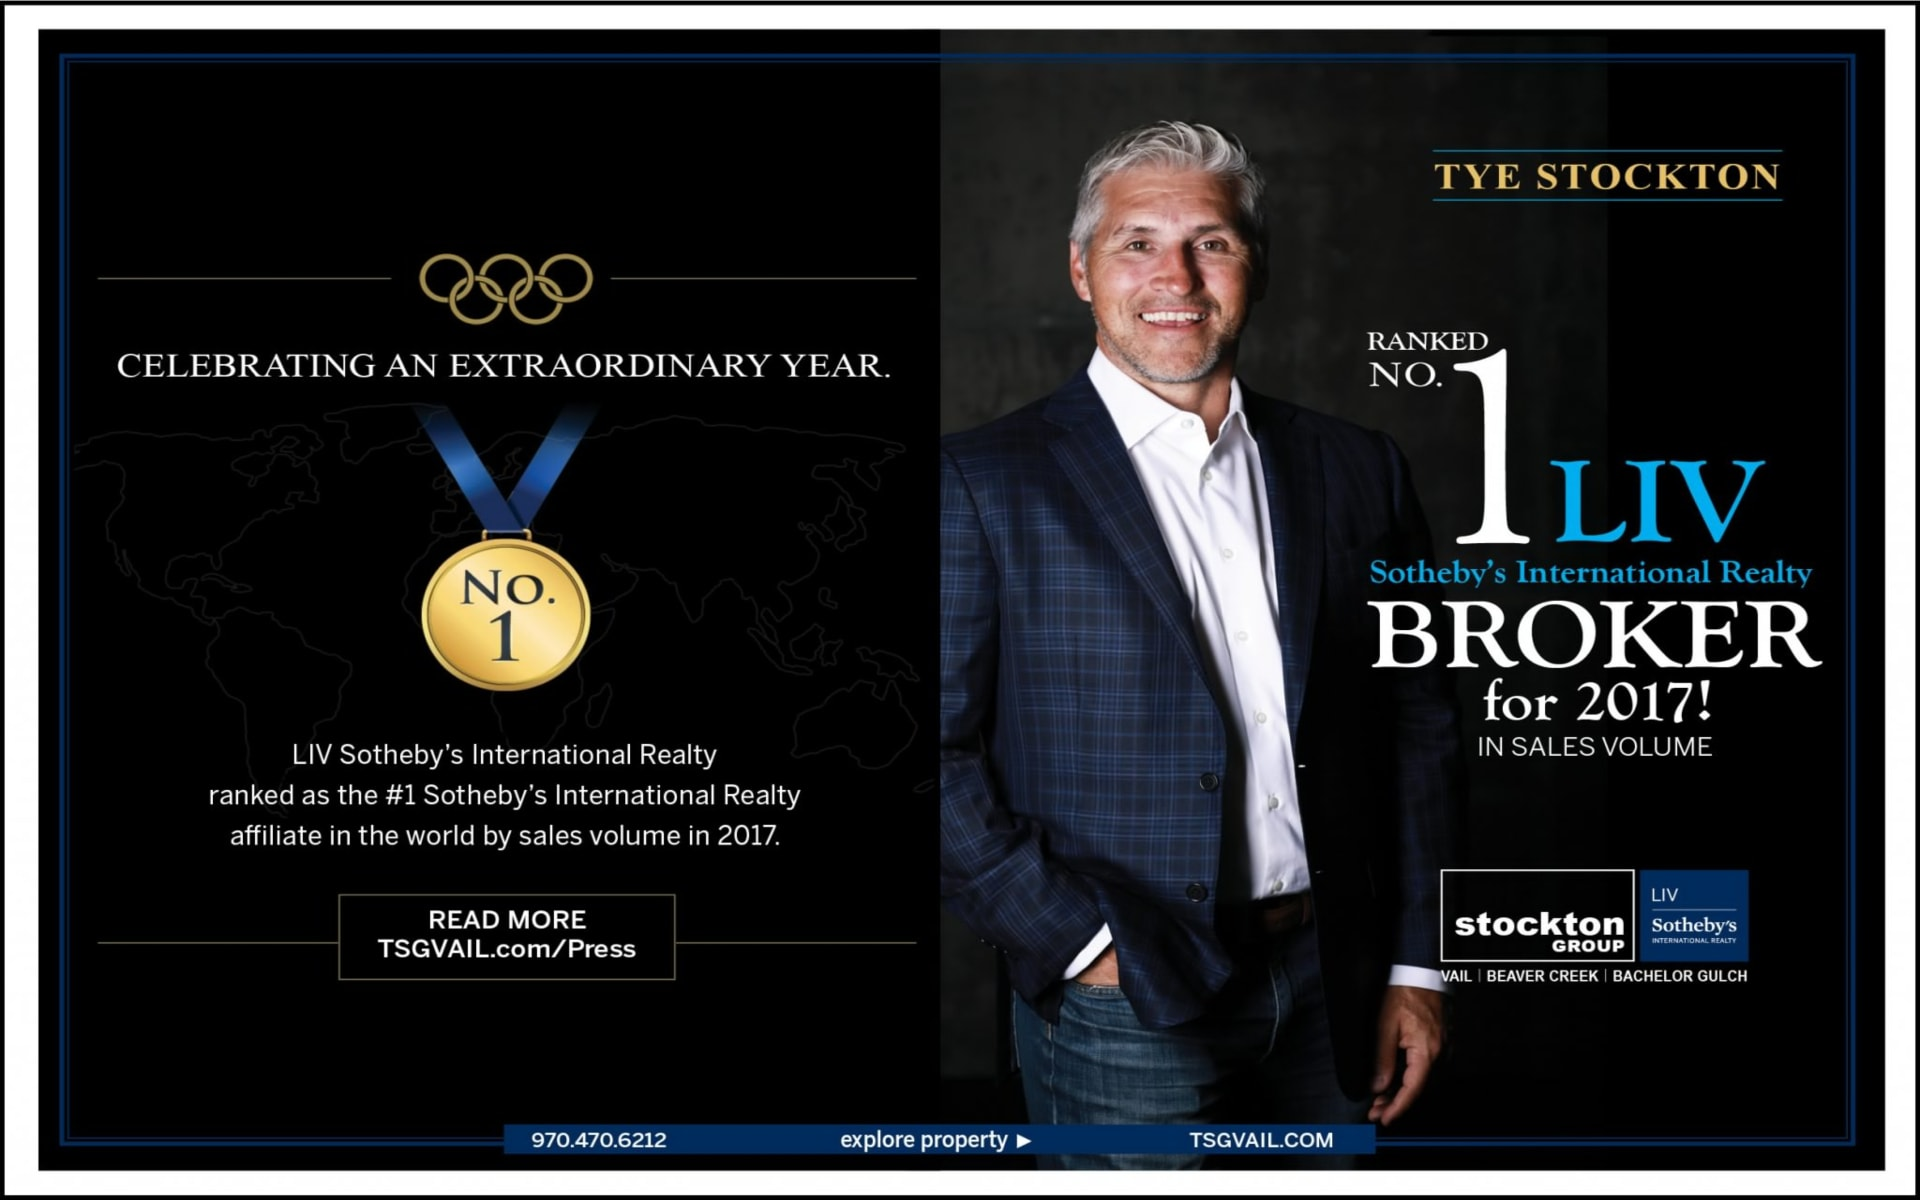 Tye Stockton Ranked #1 Liv Sotheby's International Realty Broker For 2017! In Sales Volume